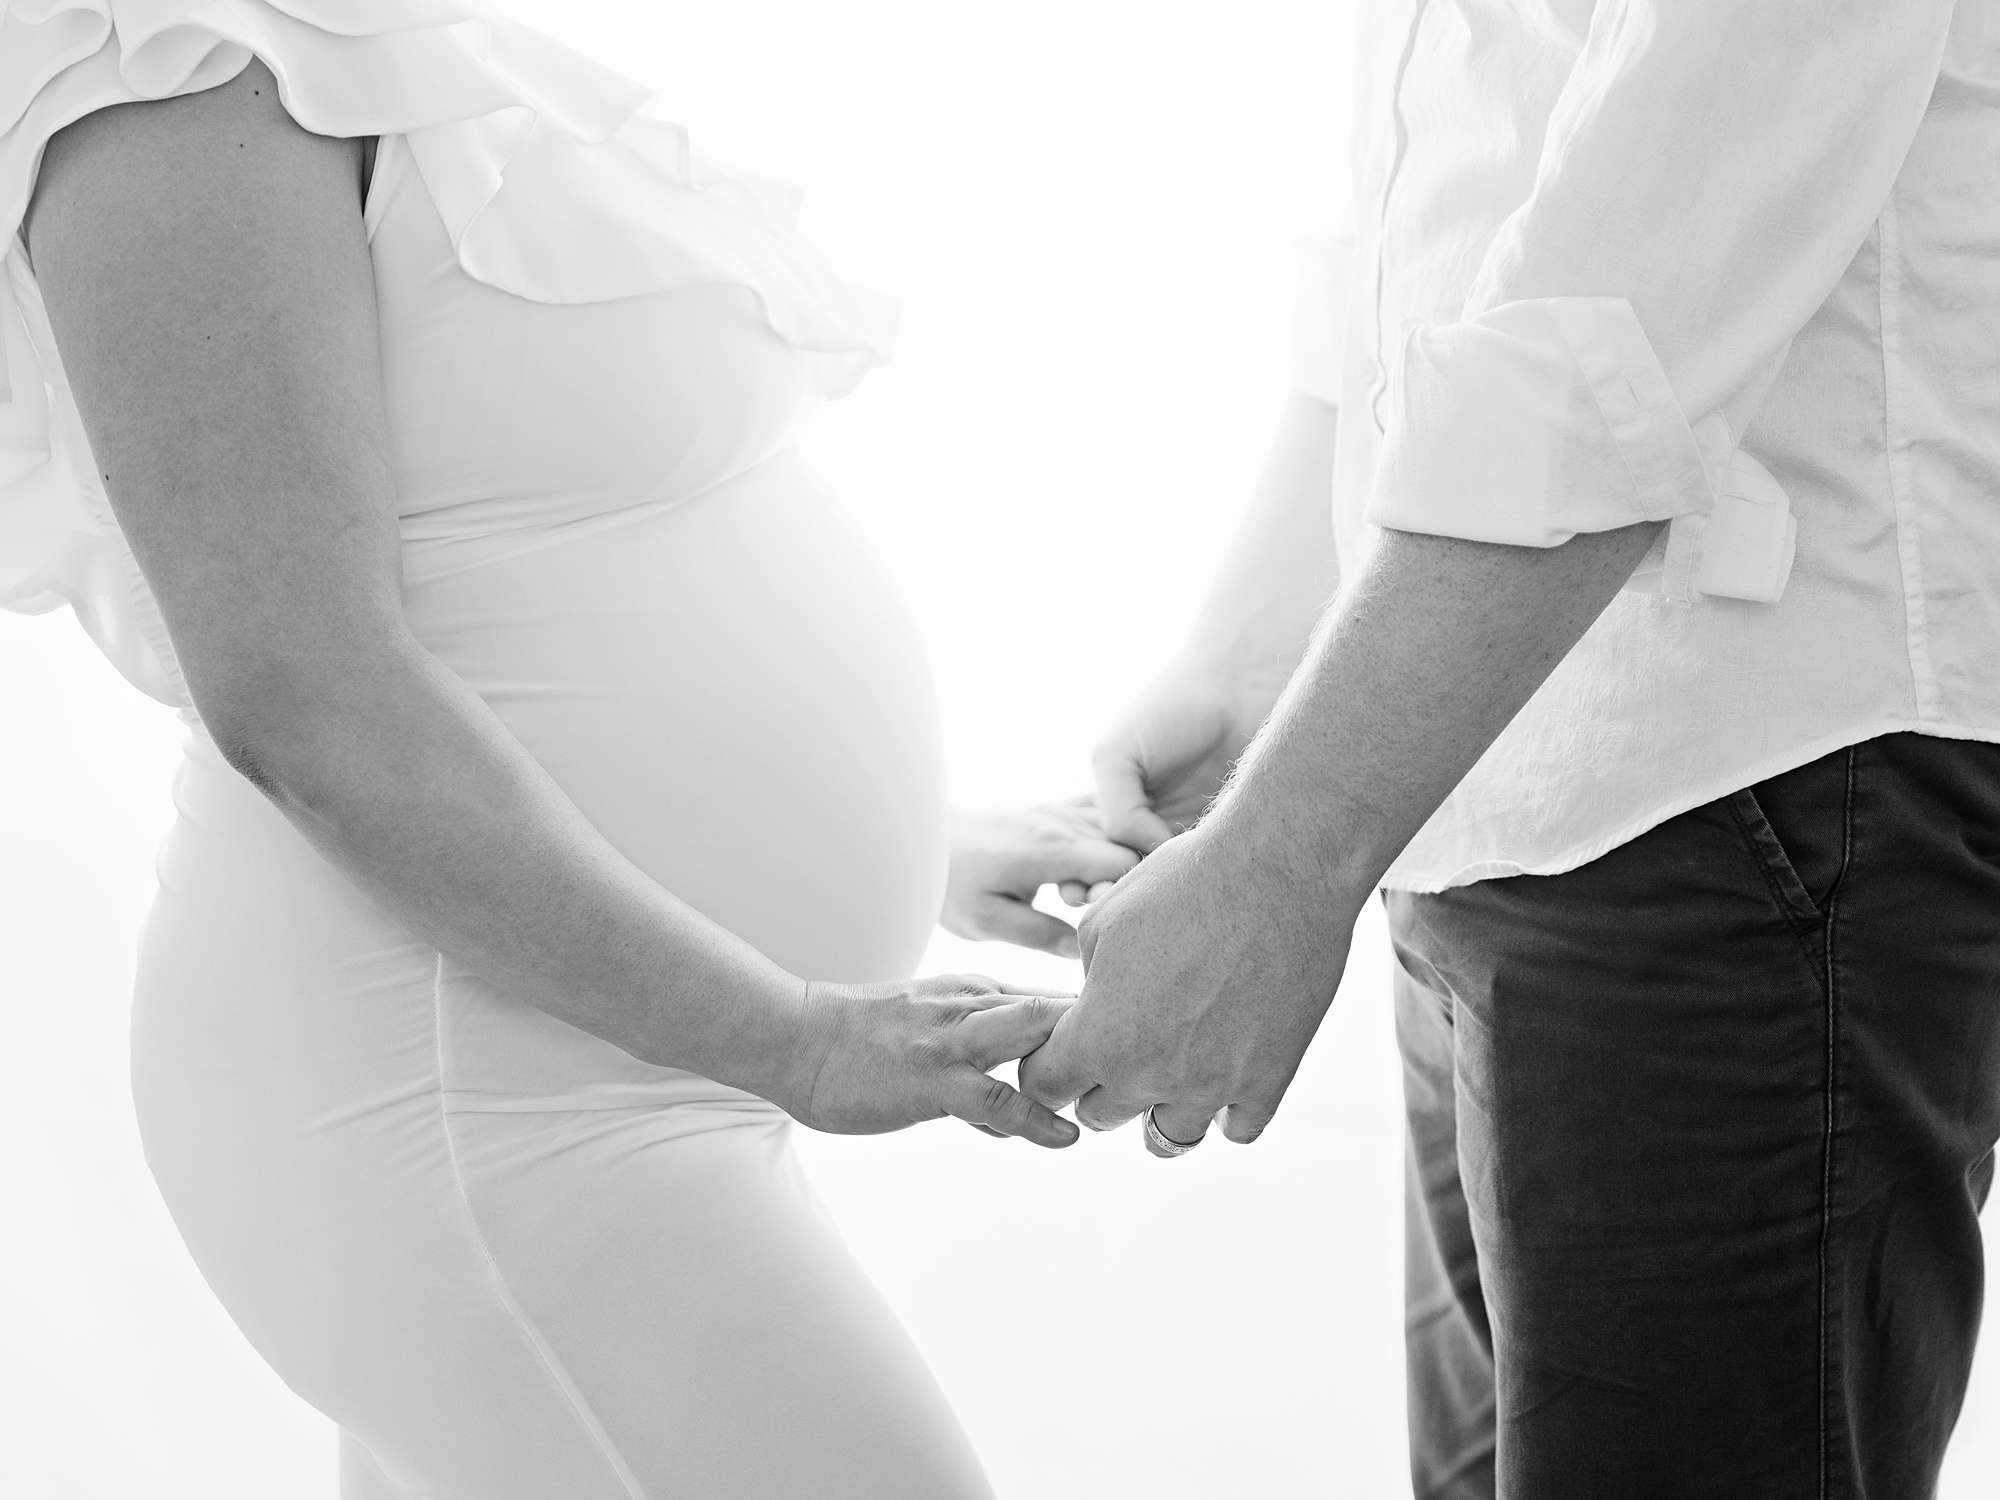 black and white holding hands maternity photography in edinburgh by anilorak photography